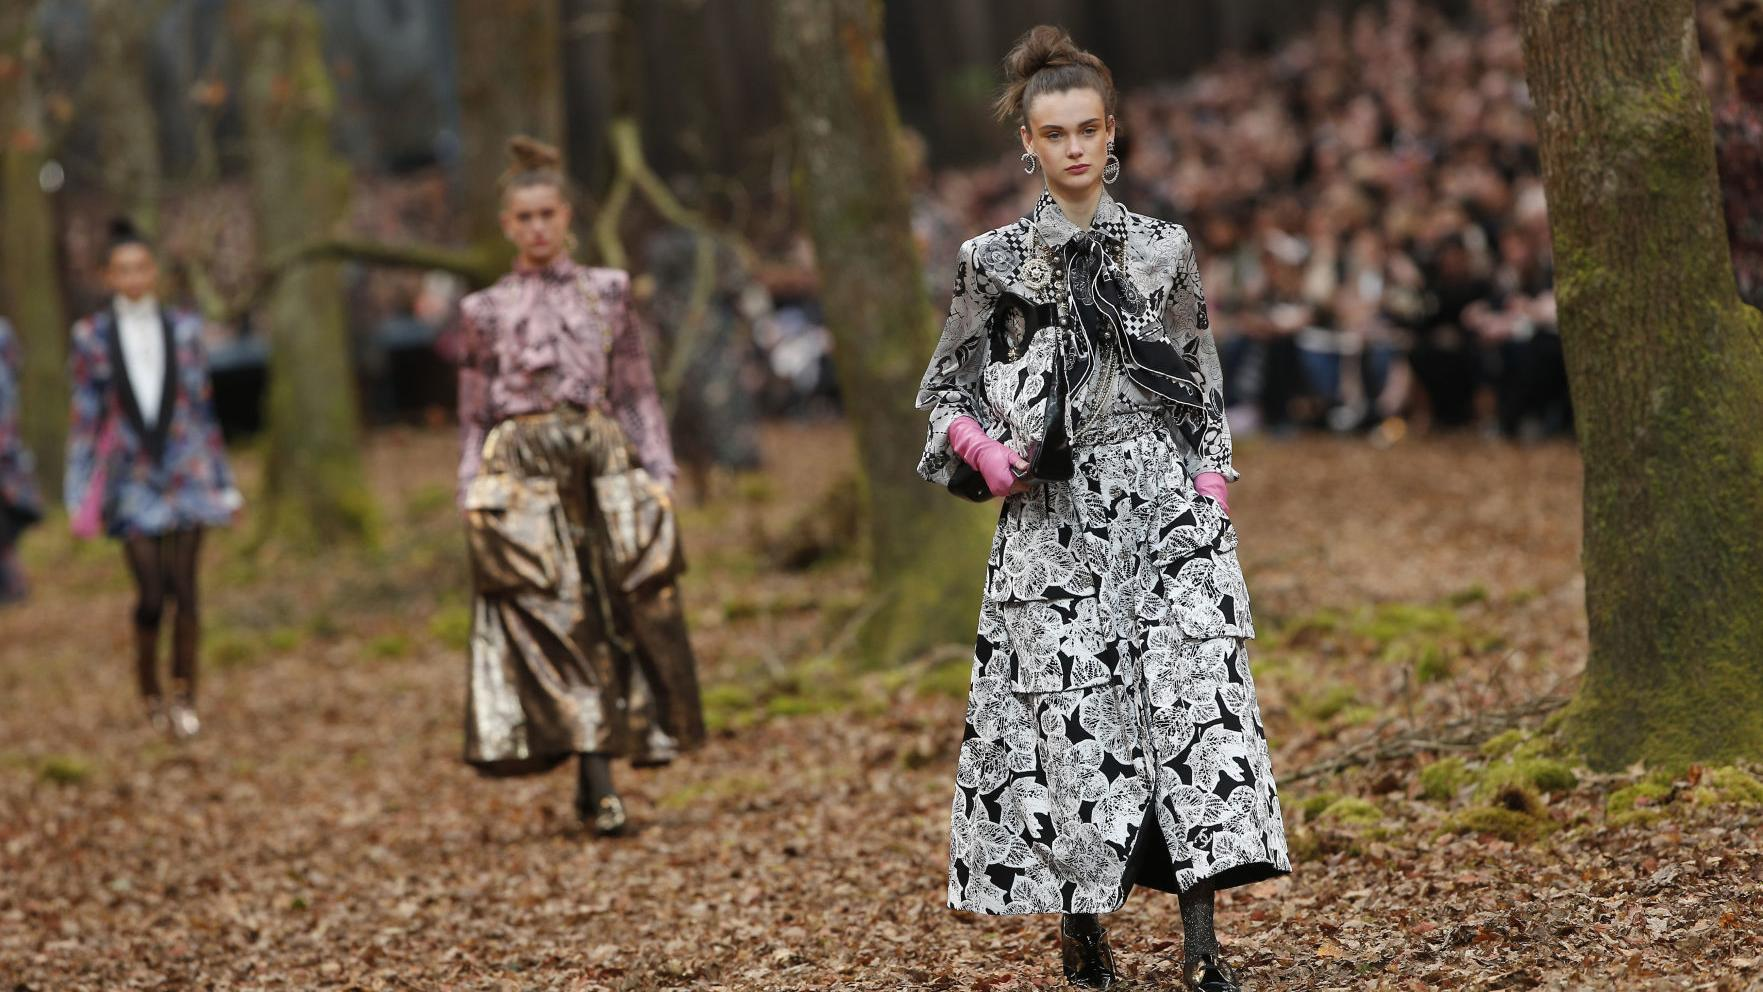 The Roaring Twenties, odes to nature and raw punk: Paris Fashion Week in photos